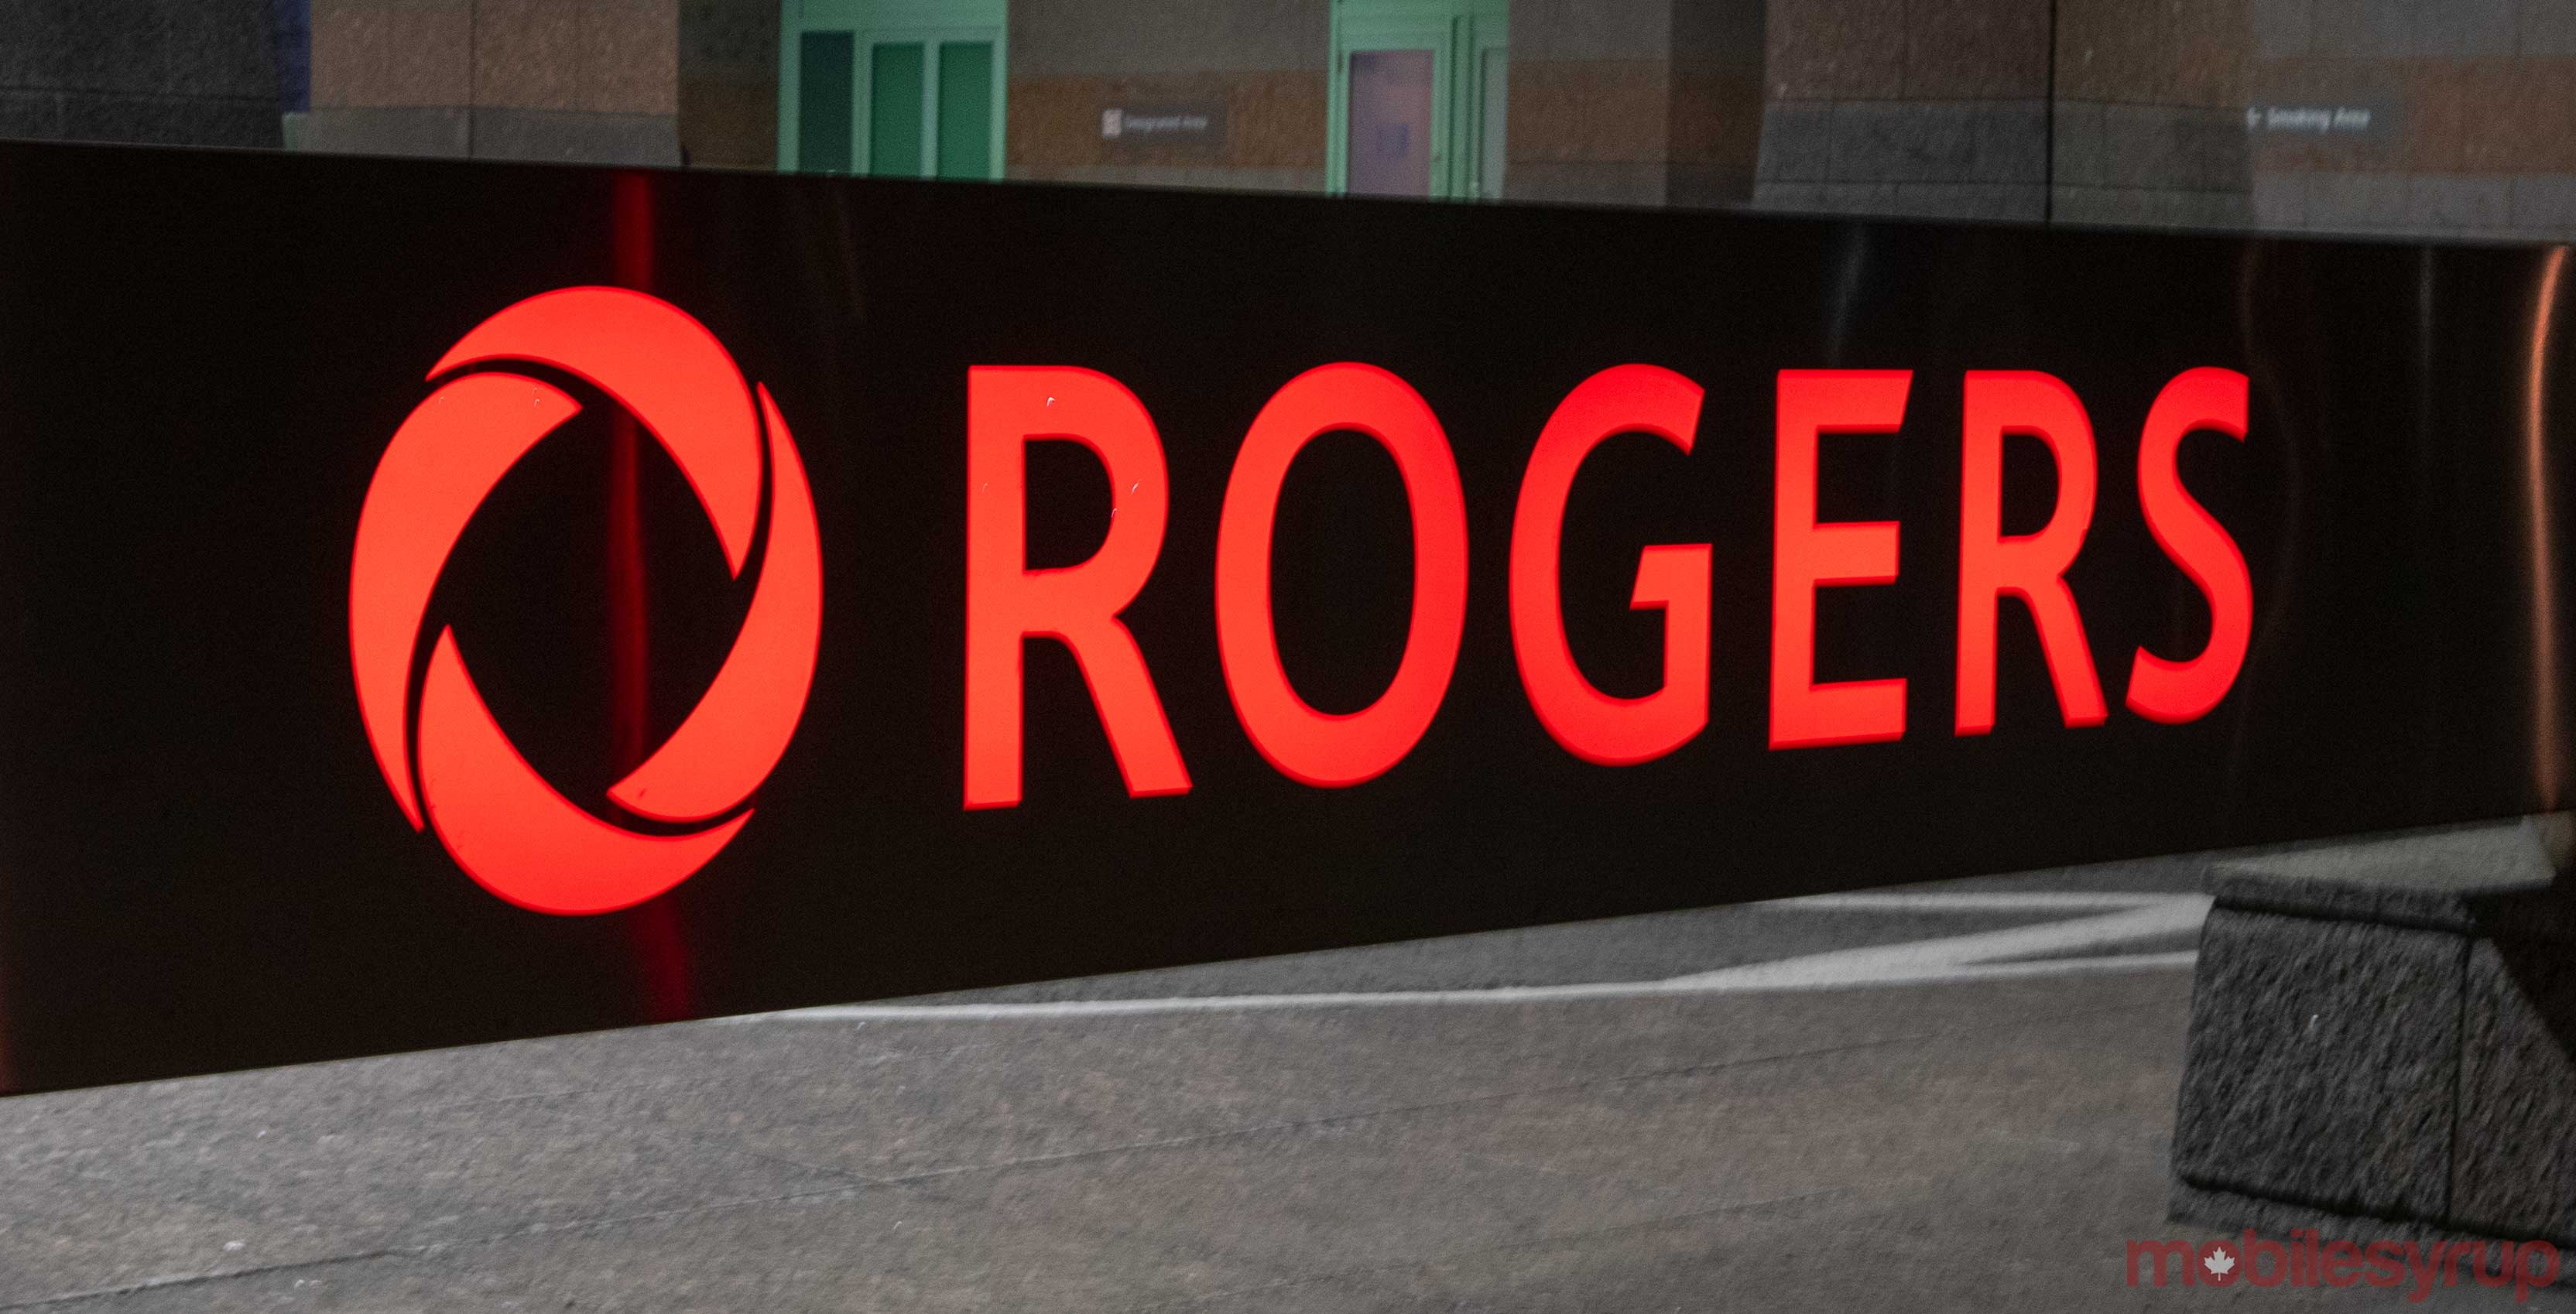 Rogers Reportedly Still Offering 8010gb 500 Credit For